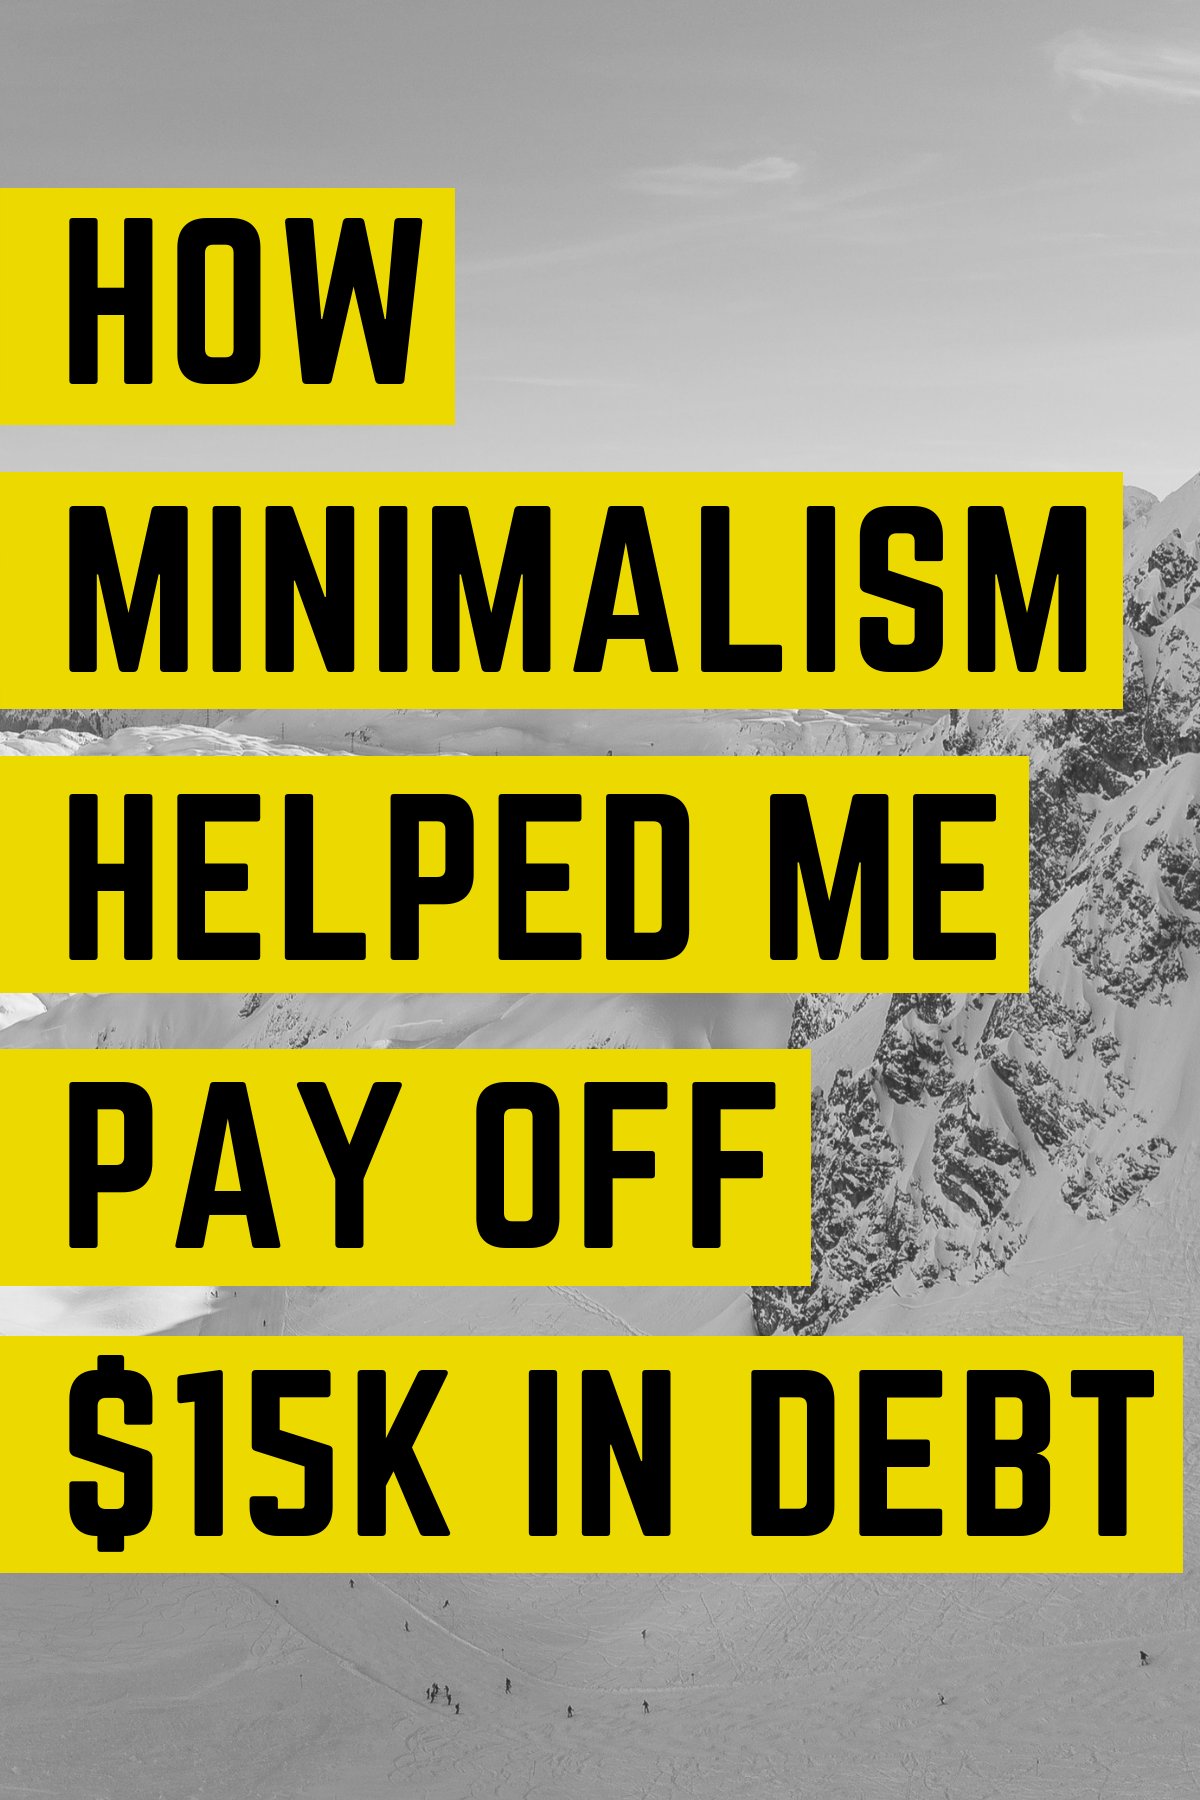 How Minimalism Helped Me Pay Off $15K In Debt